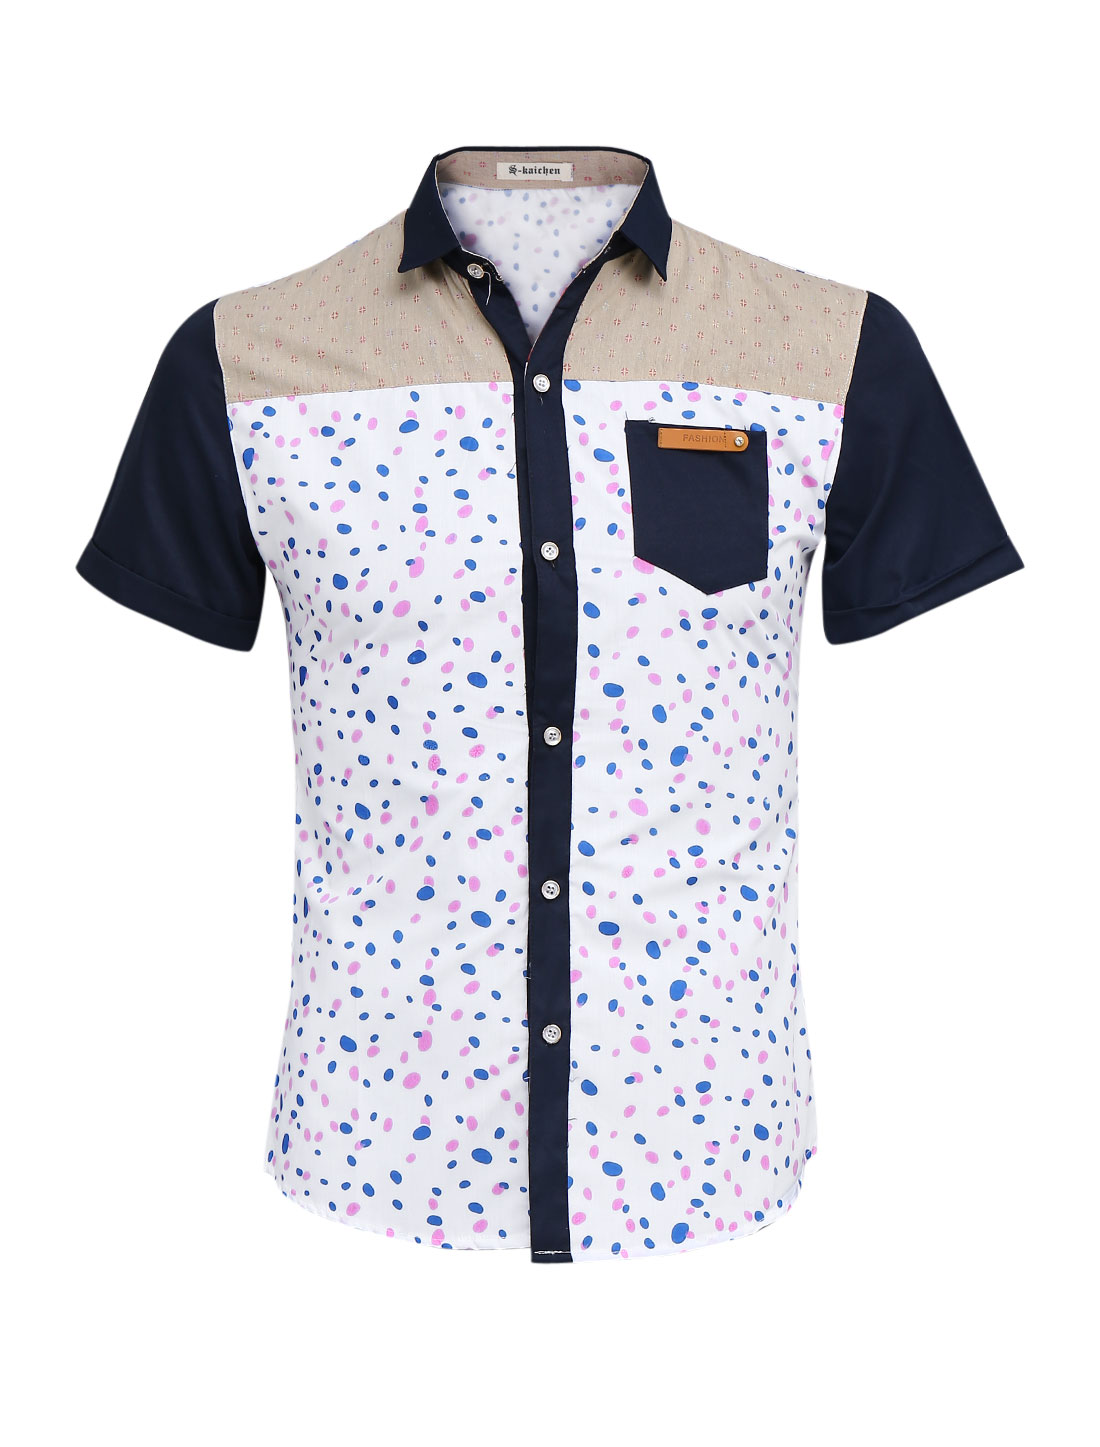 Men Casual Styling Spots Pattern Short Sleeve Shirt White S